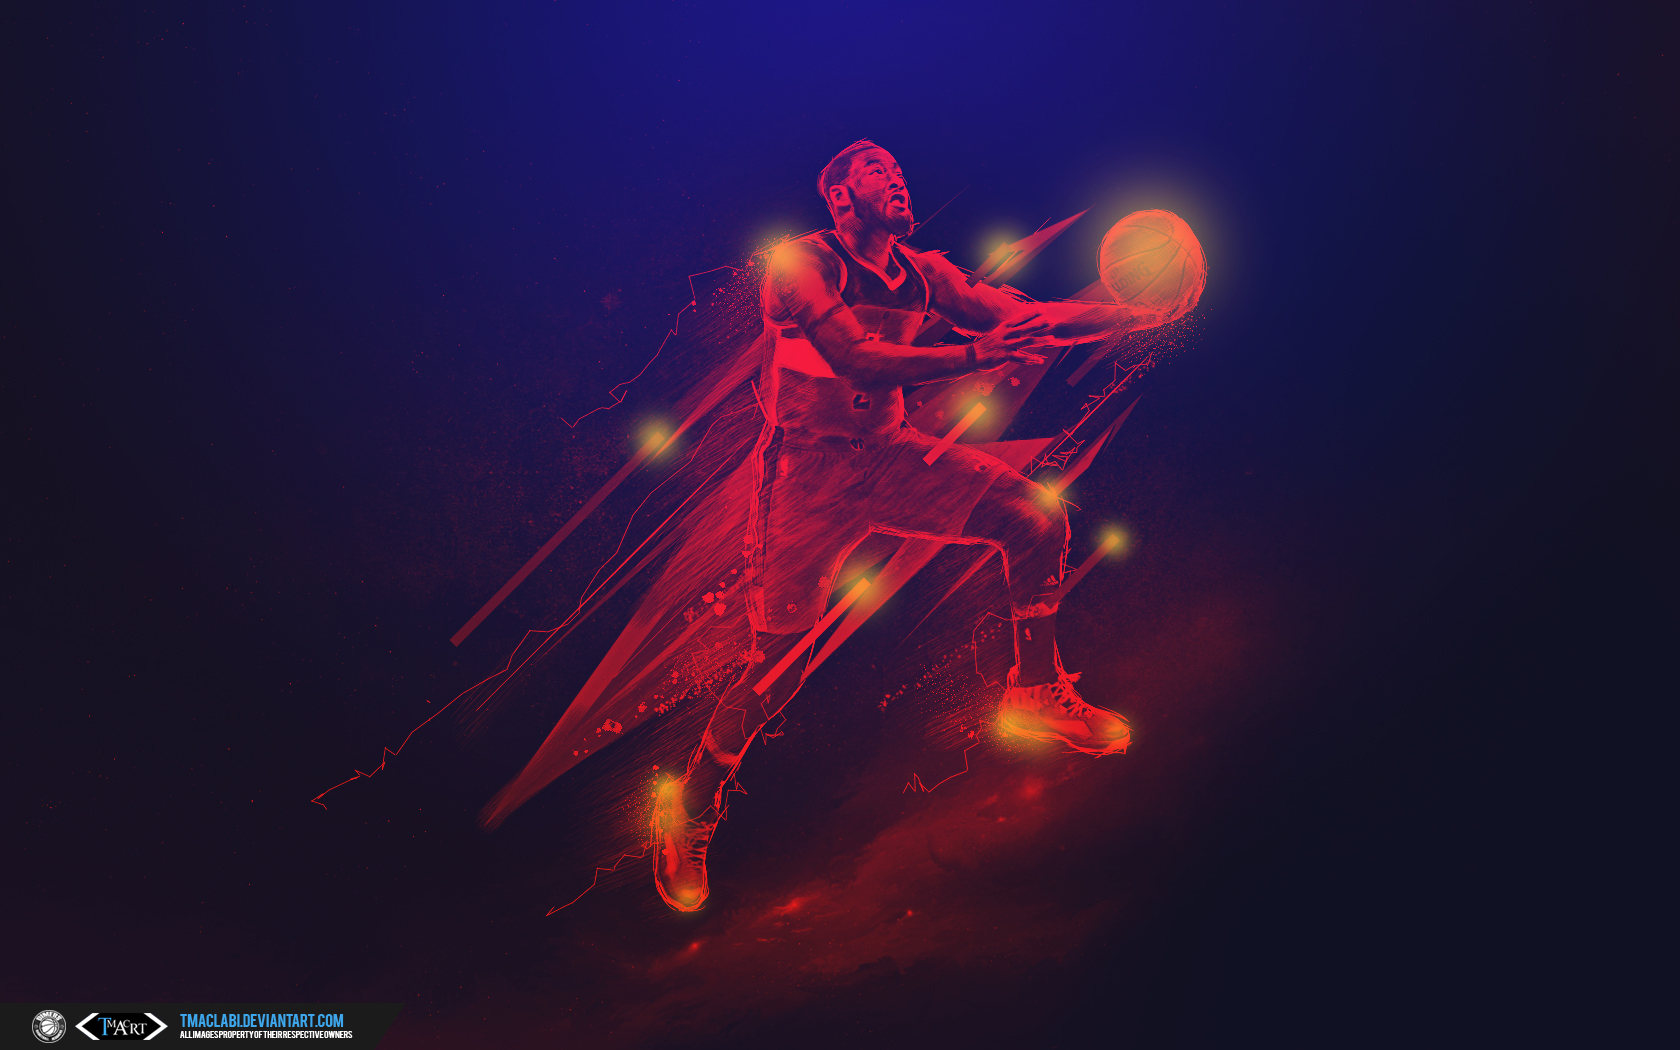 John Wall Dynamic Wallpaper By Tmaclabi